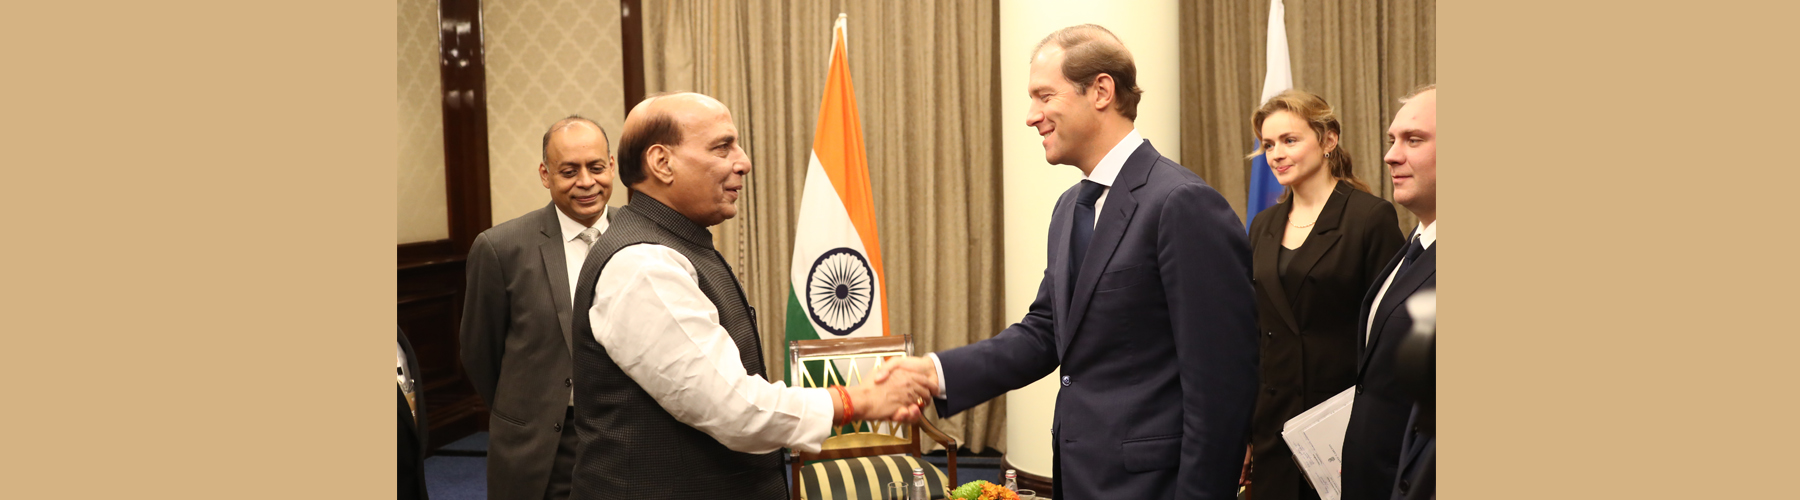 Raksha Mantri Shri Rajnath Singh meeting with Russian Minister of Trade and Industry Mr Dennis Manturov in Moscow on Tuesday, November 05, 2019.